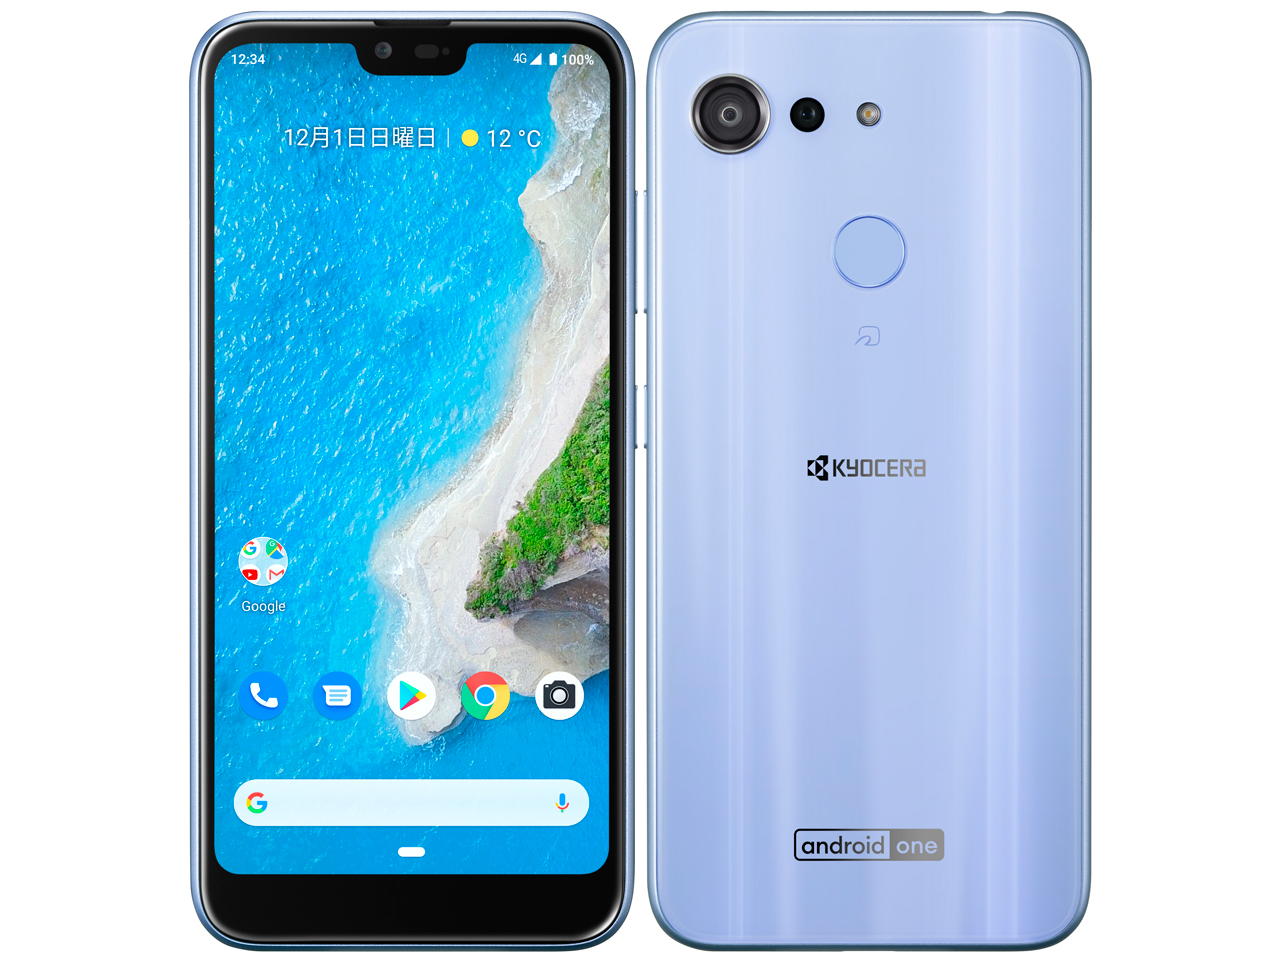 Android One S6 ワイモバイル